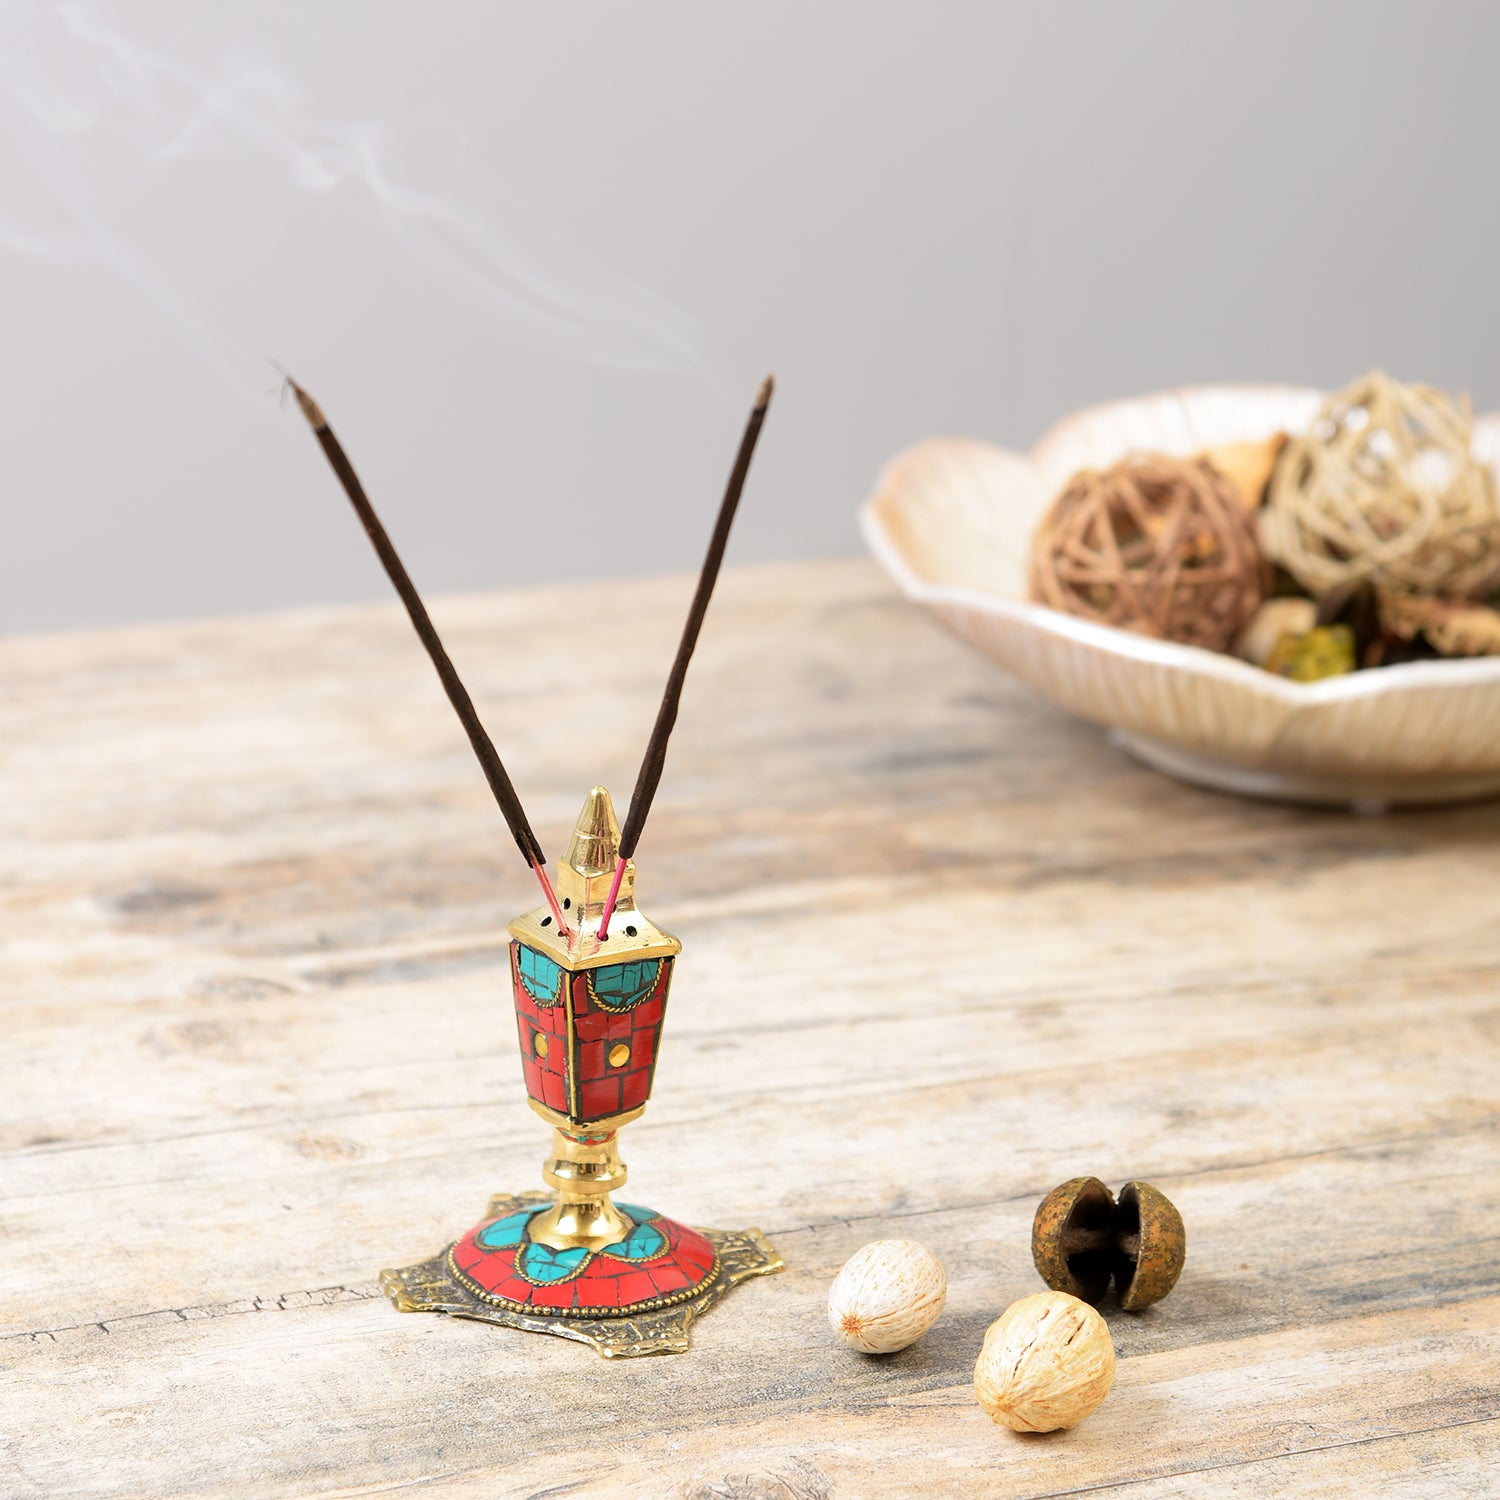 Handcrafted Stone Incense Holder - Red and Turquoise